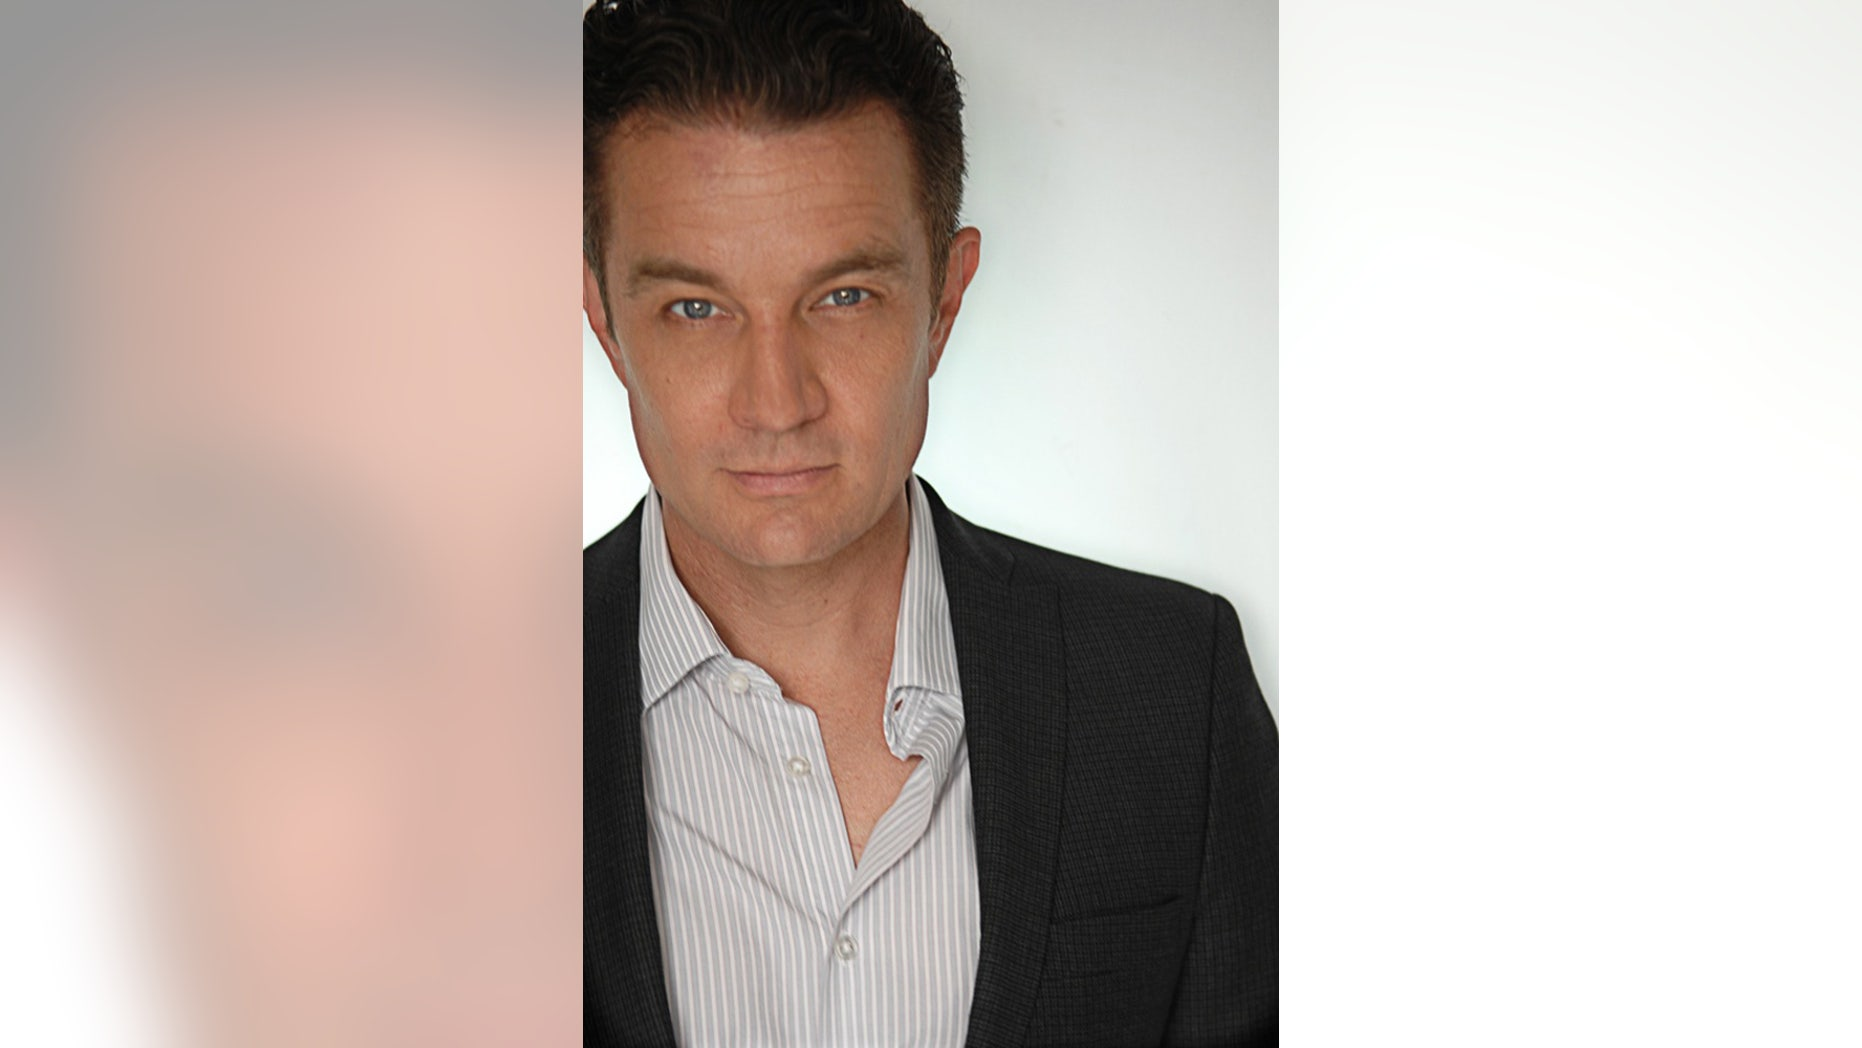 """James Marsters of """"Buffy the Vampire Slayer"""" fame is starring as Victor Stein on Hulu's """"Marvel's Runaways."""""""